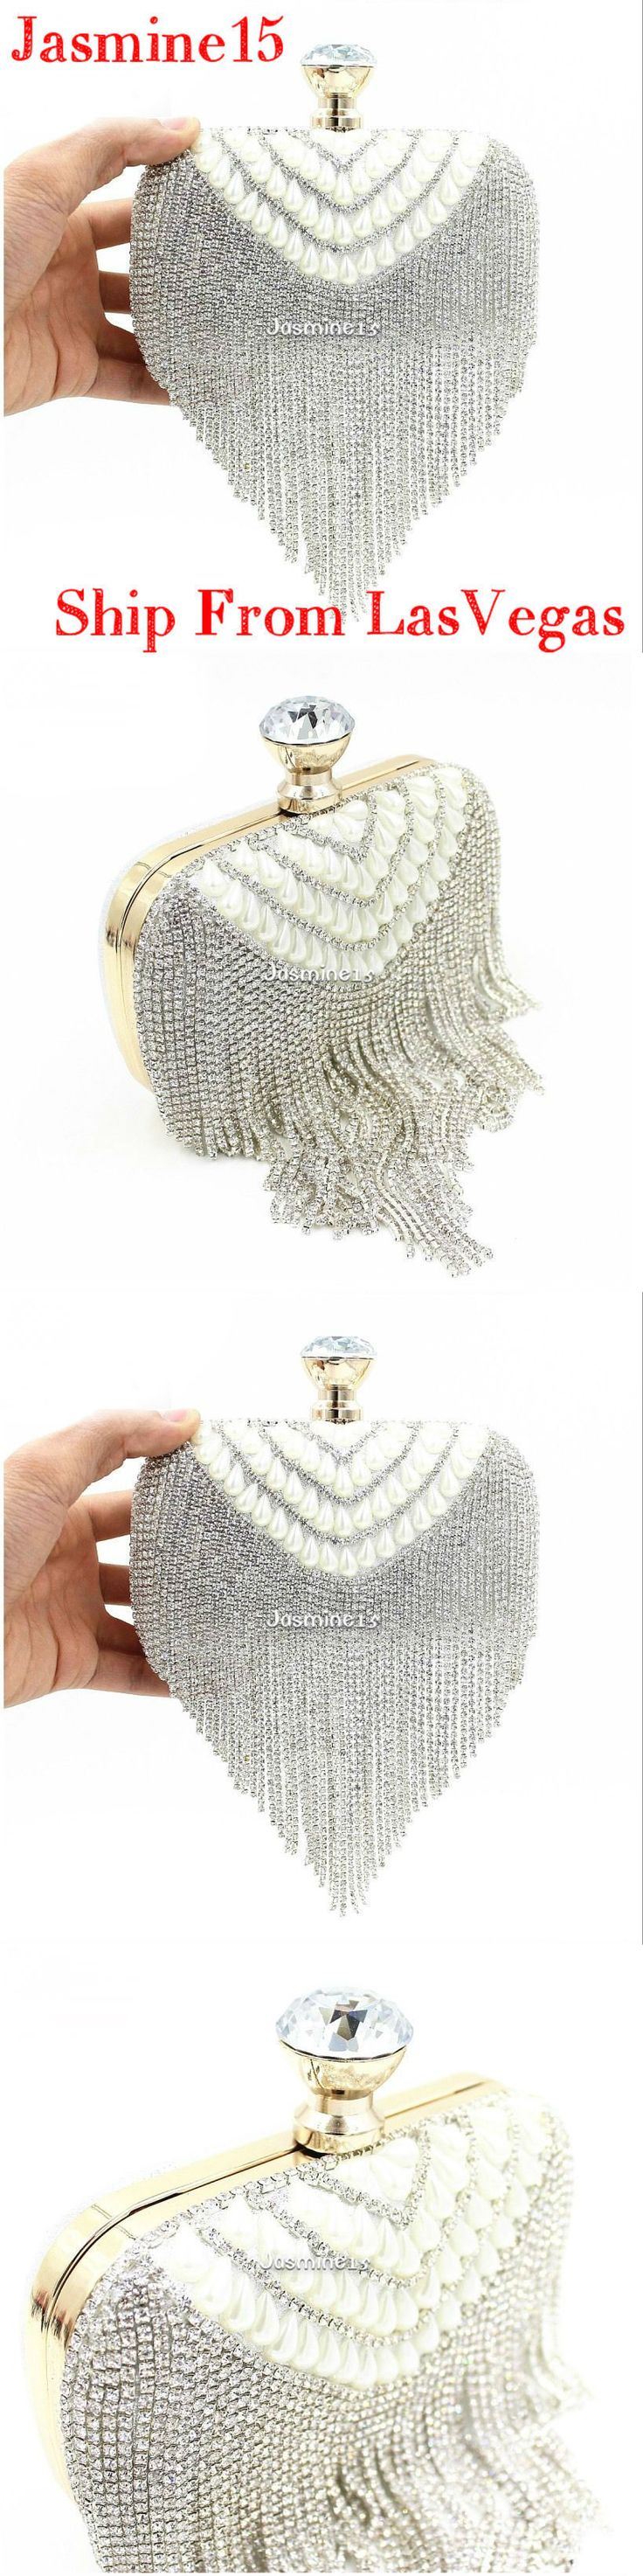 Bridal Handbags And Bags: Silver Tassel Crystal Wedding Evening Clutch Bag With White Pearl And Diamond -> BUY IT NOW ONLY: $35.0 on eBay!